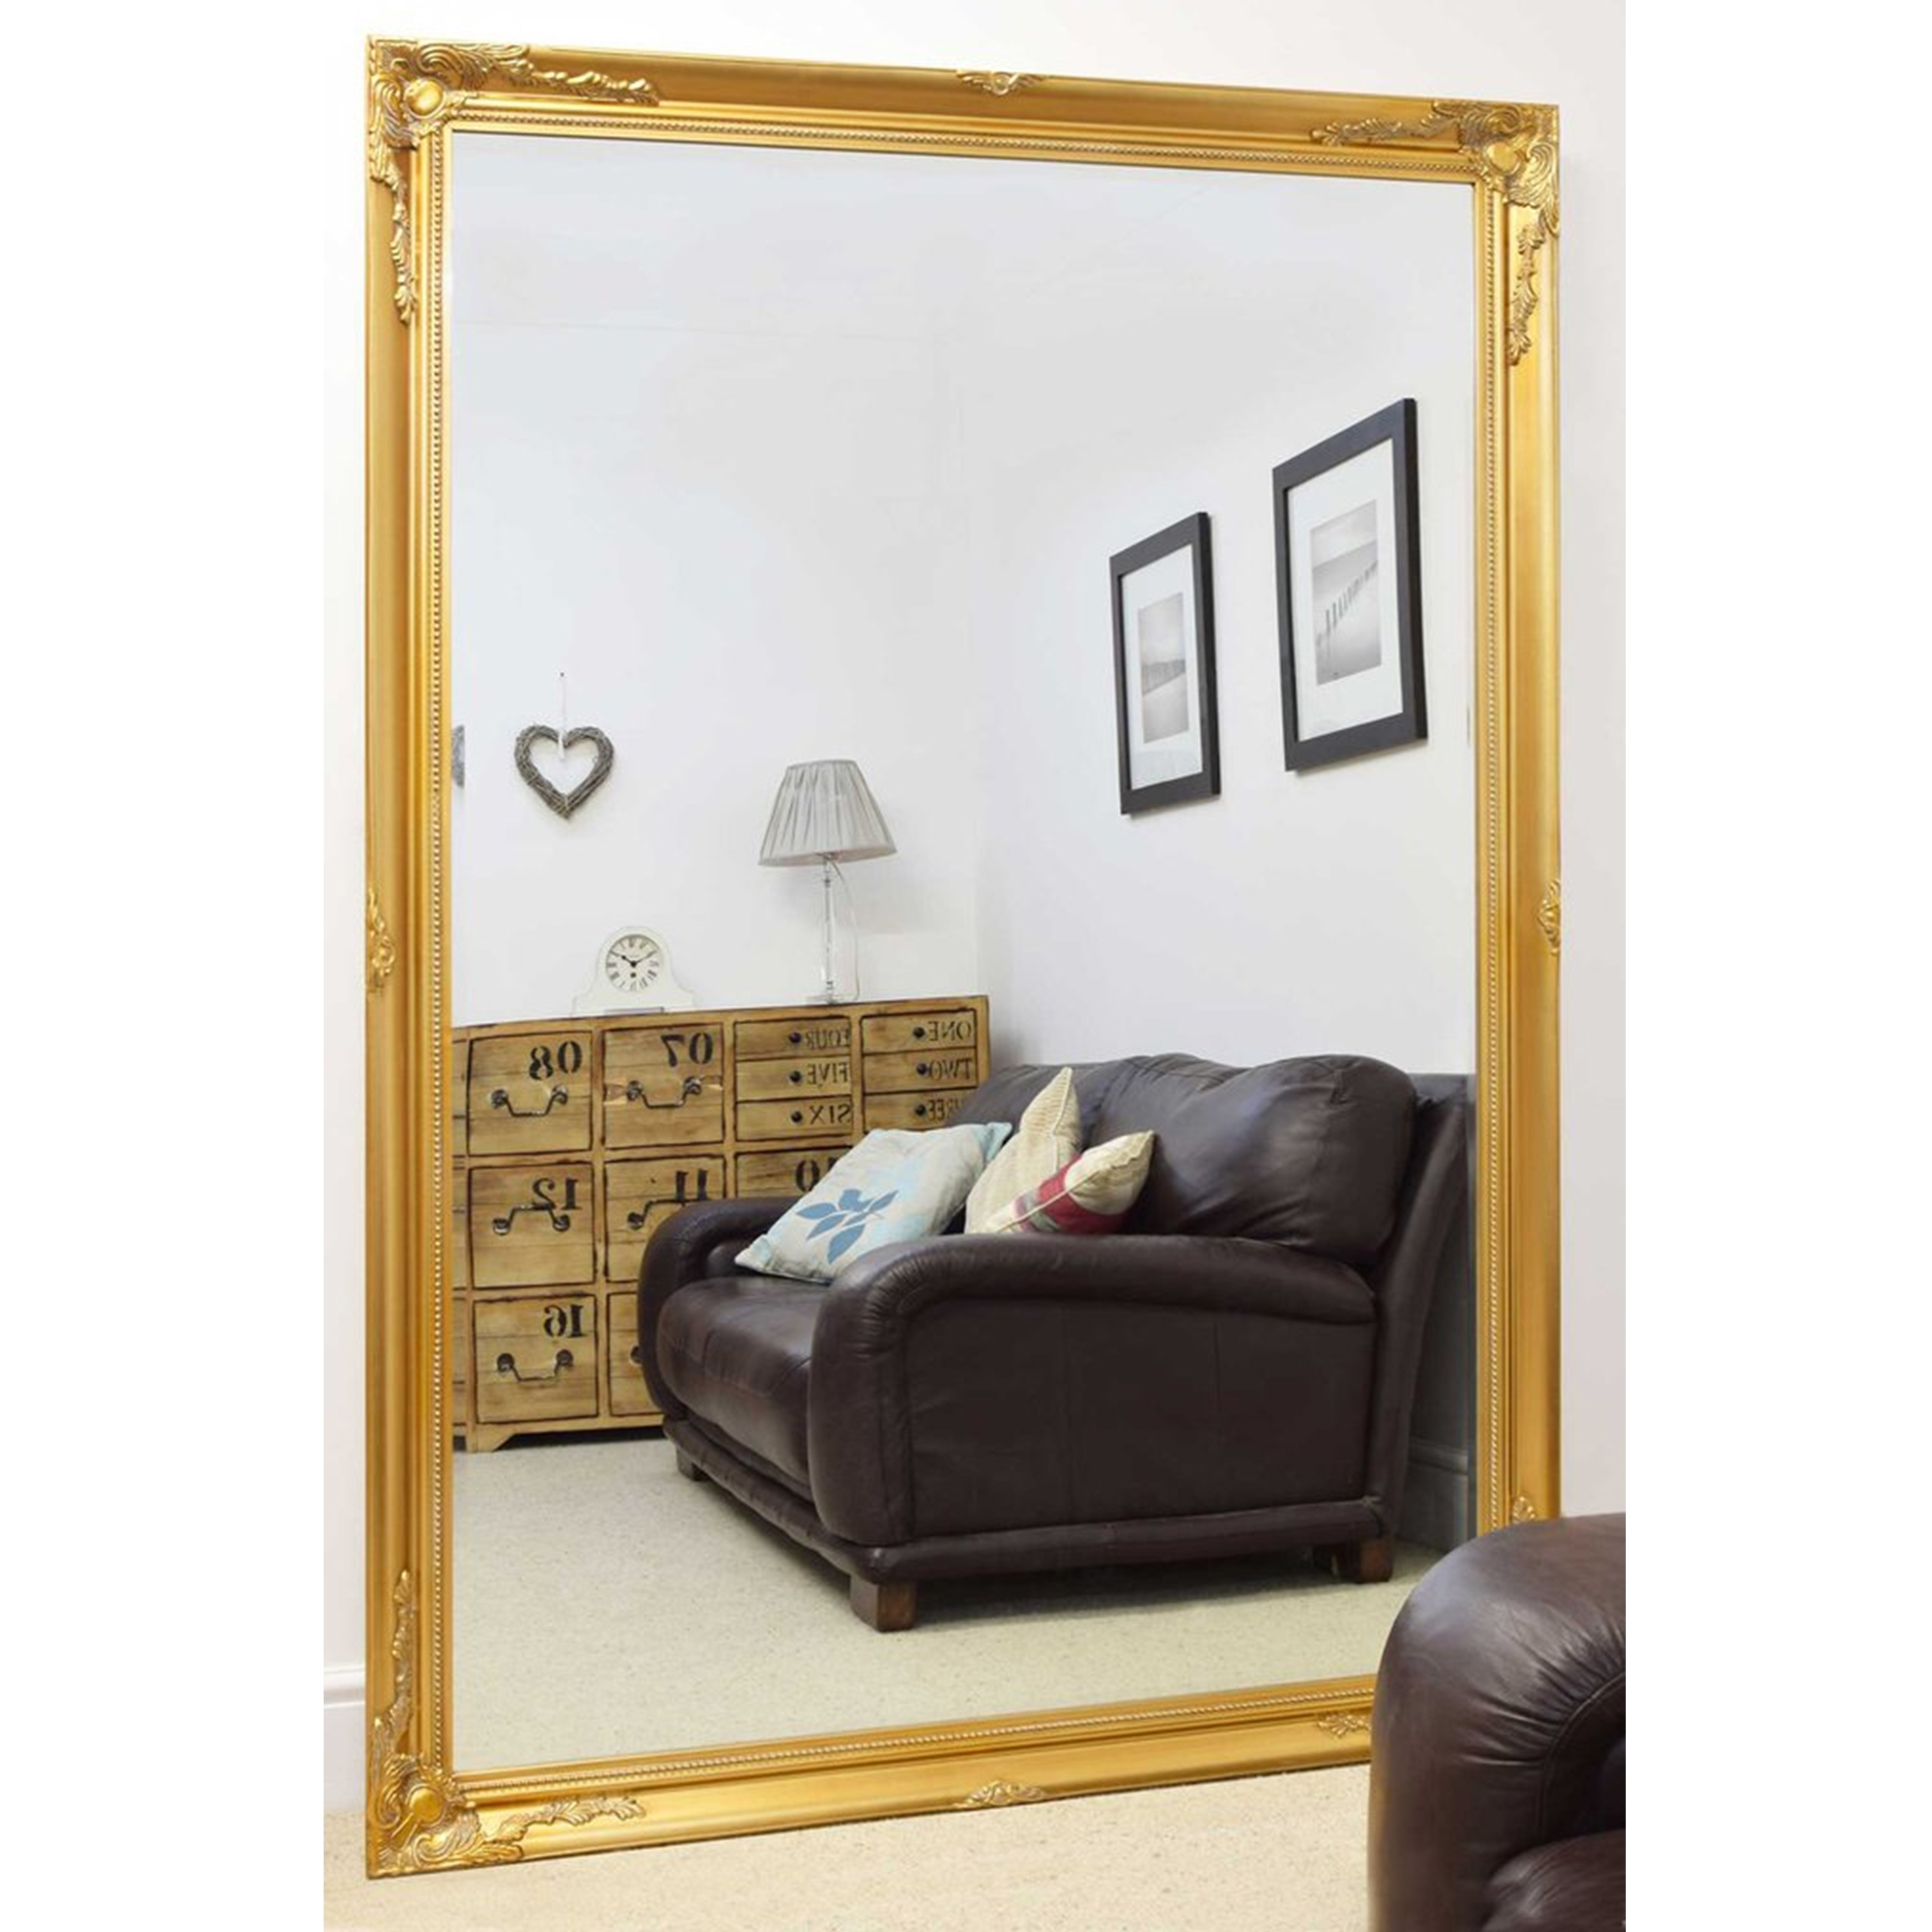 most living bathroom items decoration frame ideas mirrors decor artistry room kitchen for divine mirror decorative art wall